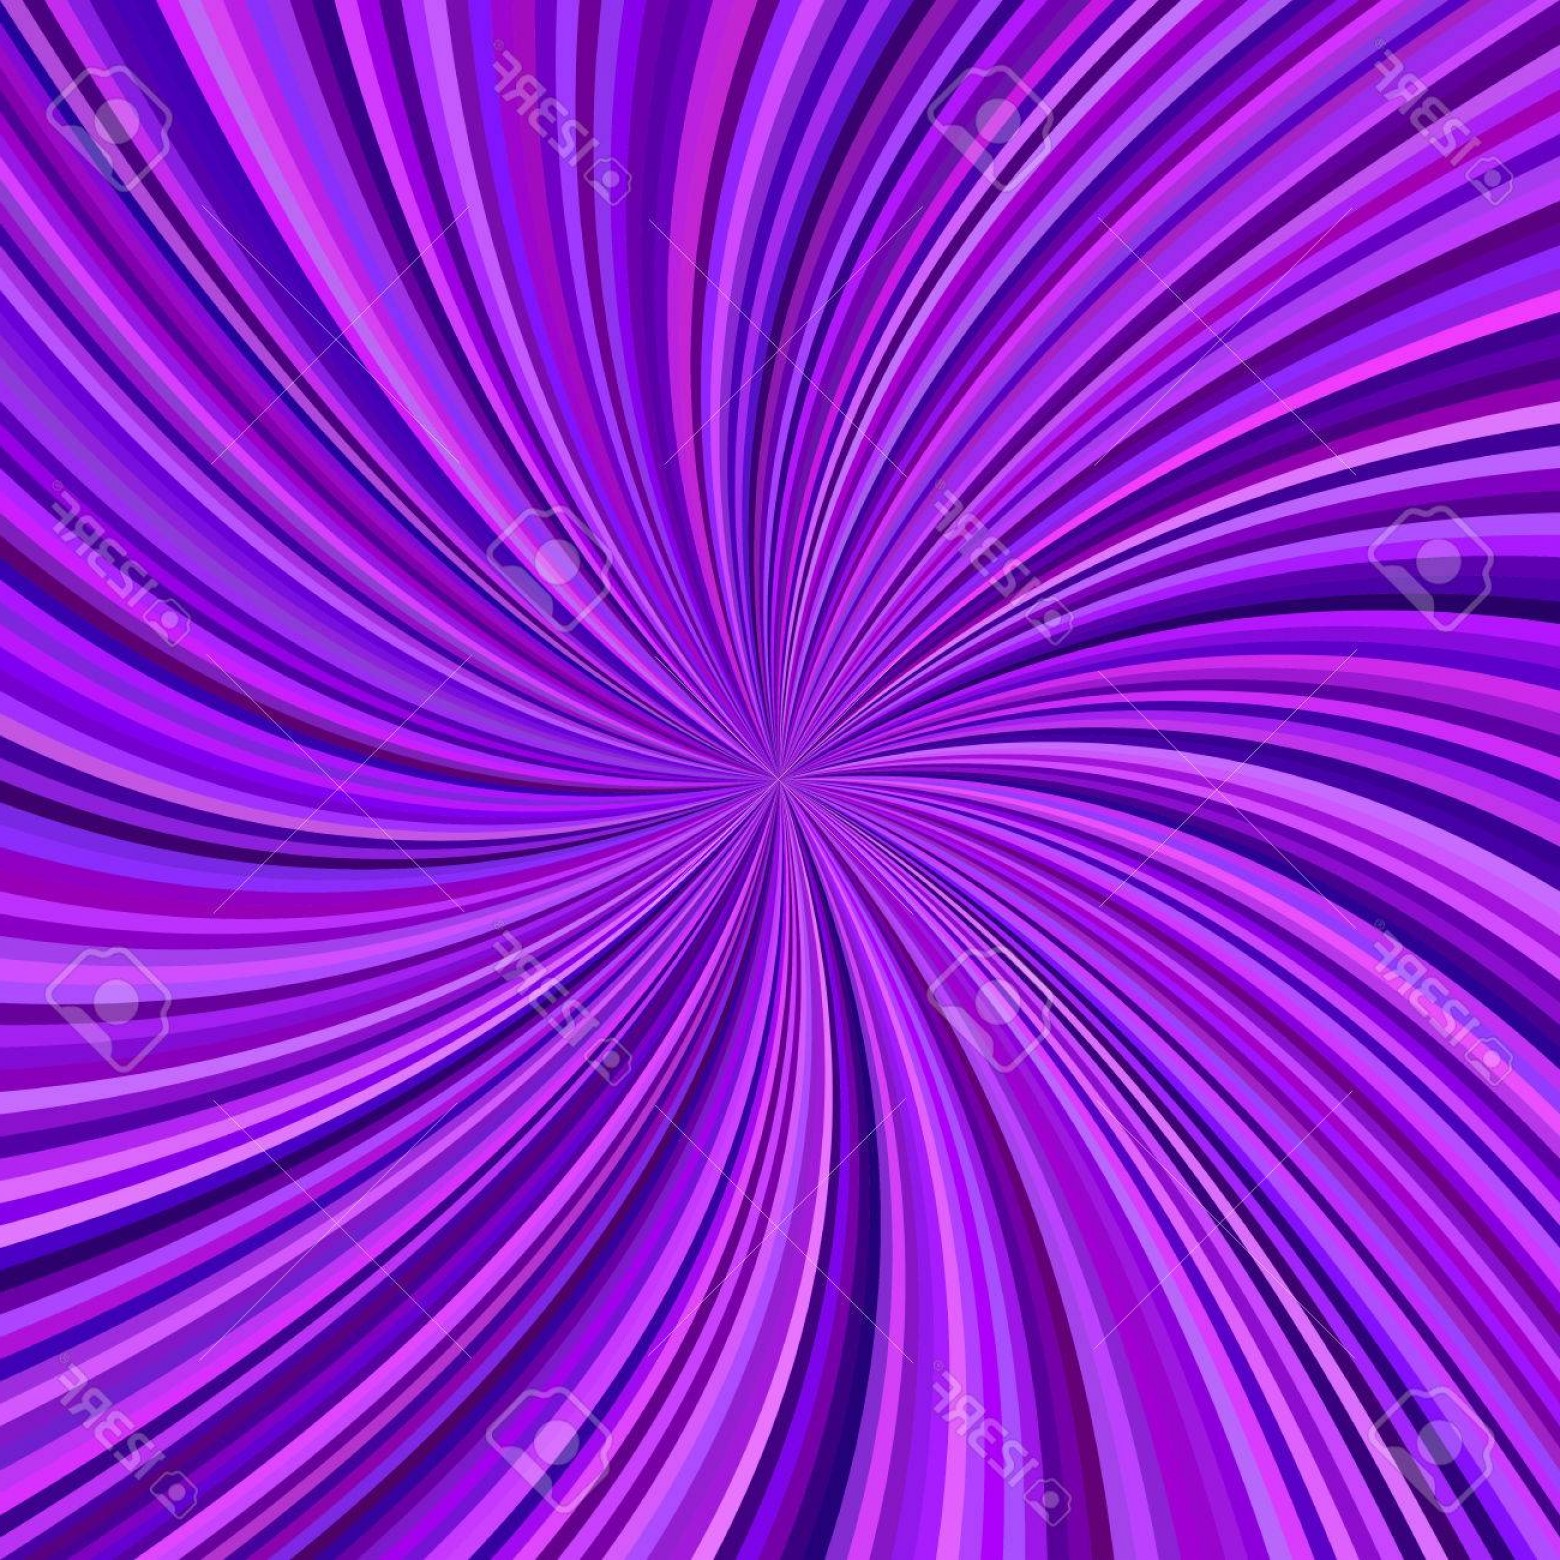 Violet Swirl Design Vector: Photostock Vector Abstract Purple Swirl Background From Curved Spiral Ray Stripes Vector Graphic